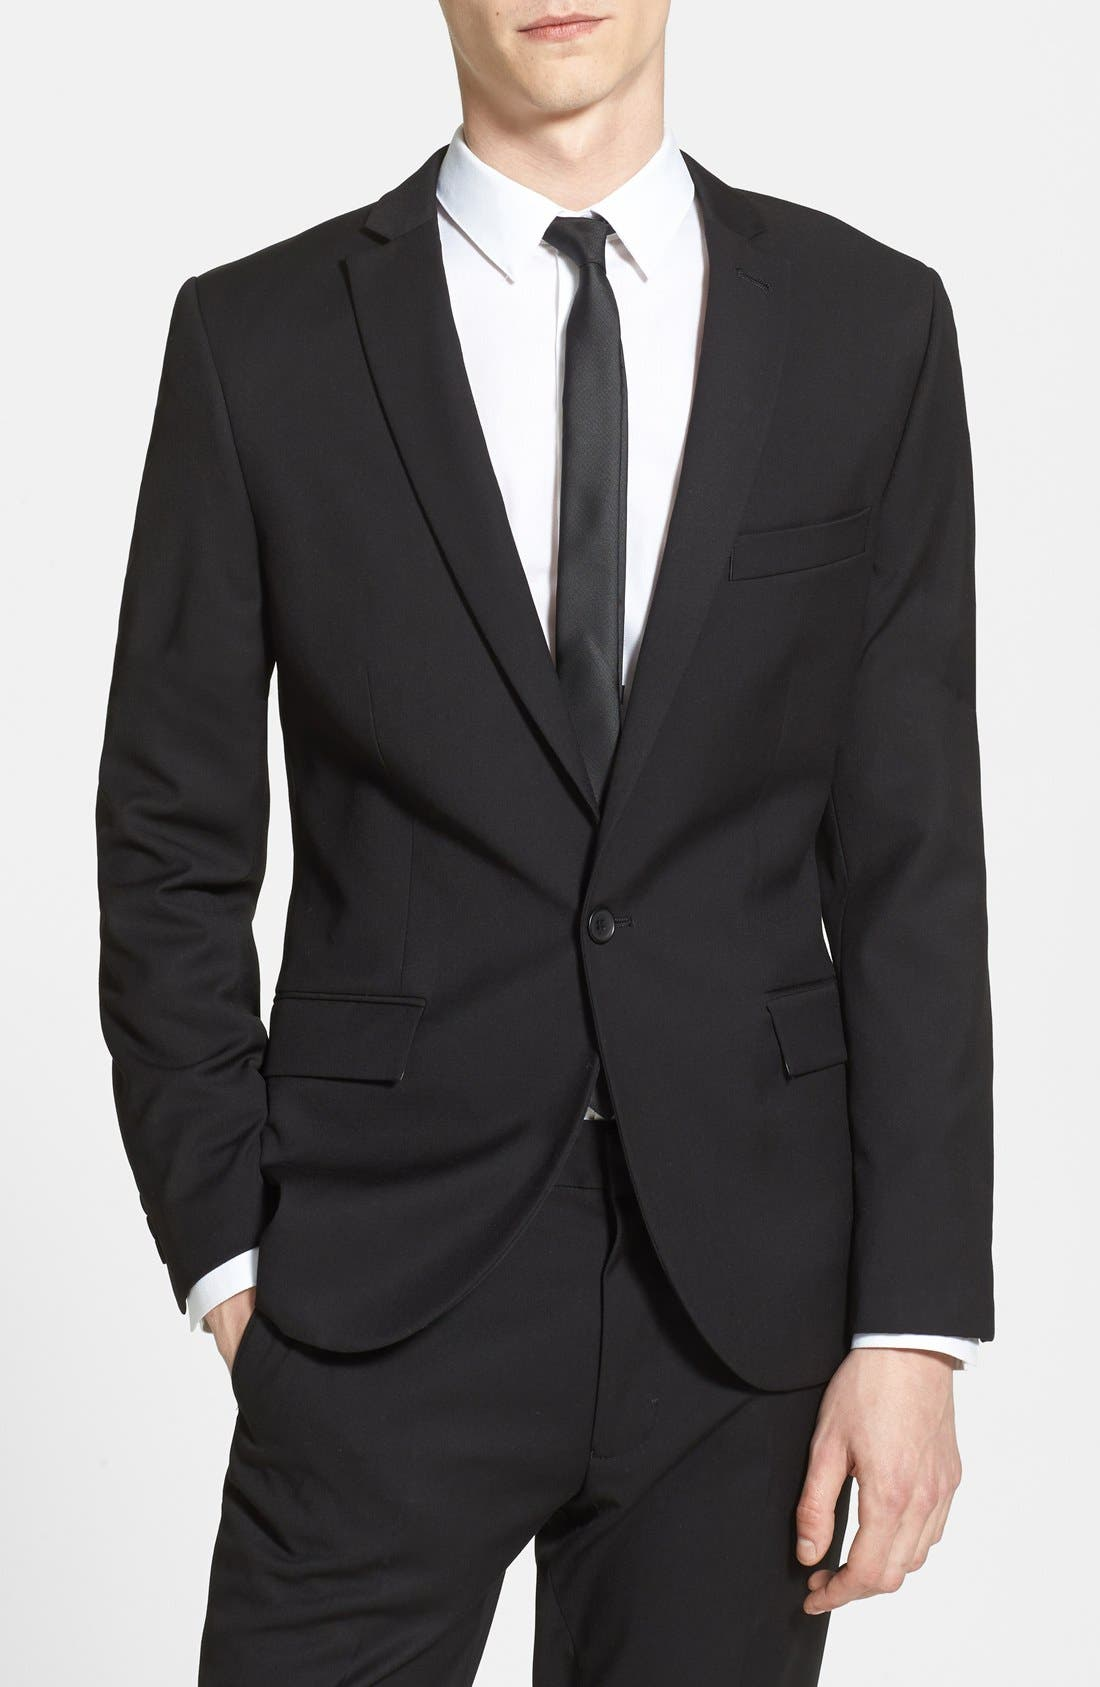 Alternate Image 1 Selected - Topman Black Textured Skinny Fit Suit Jacket